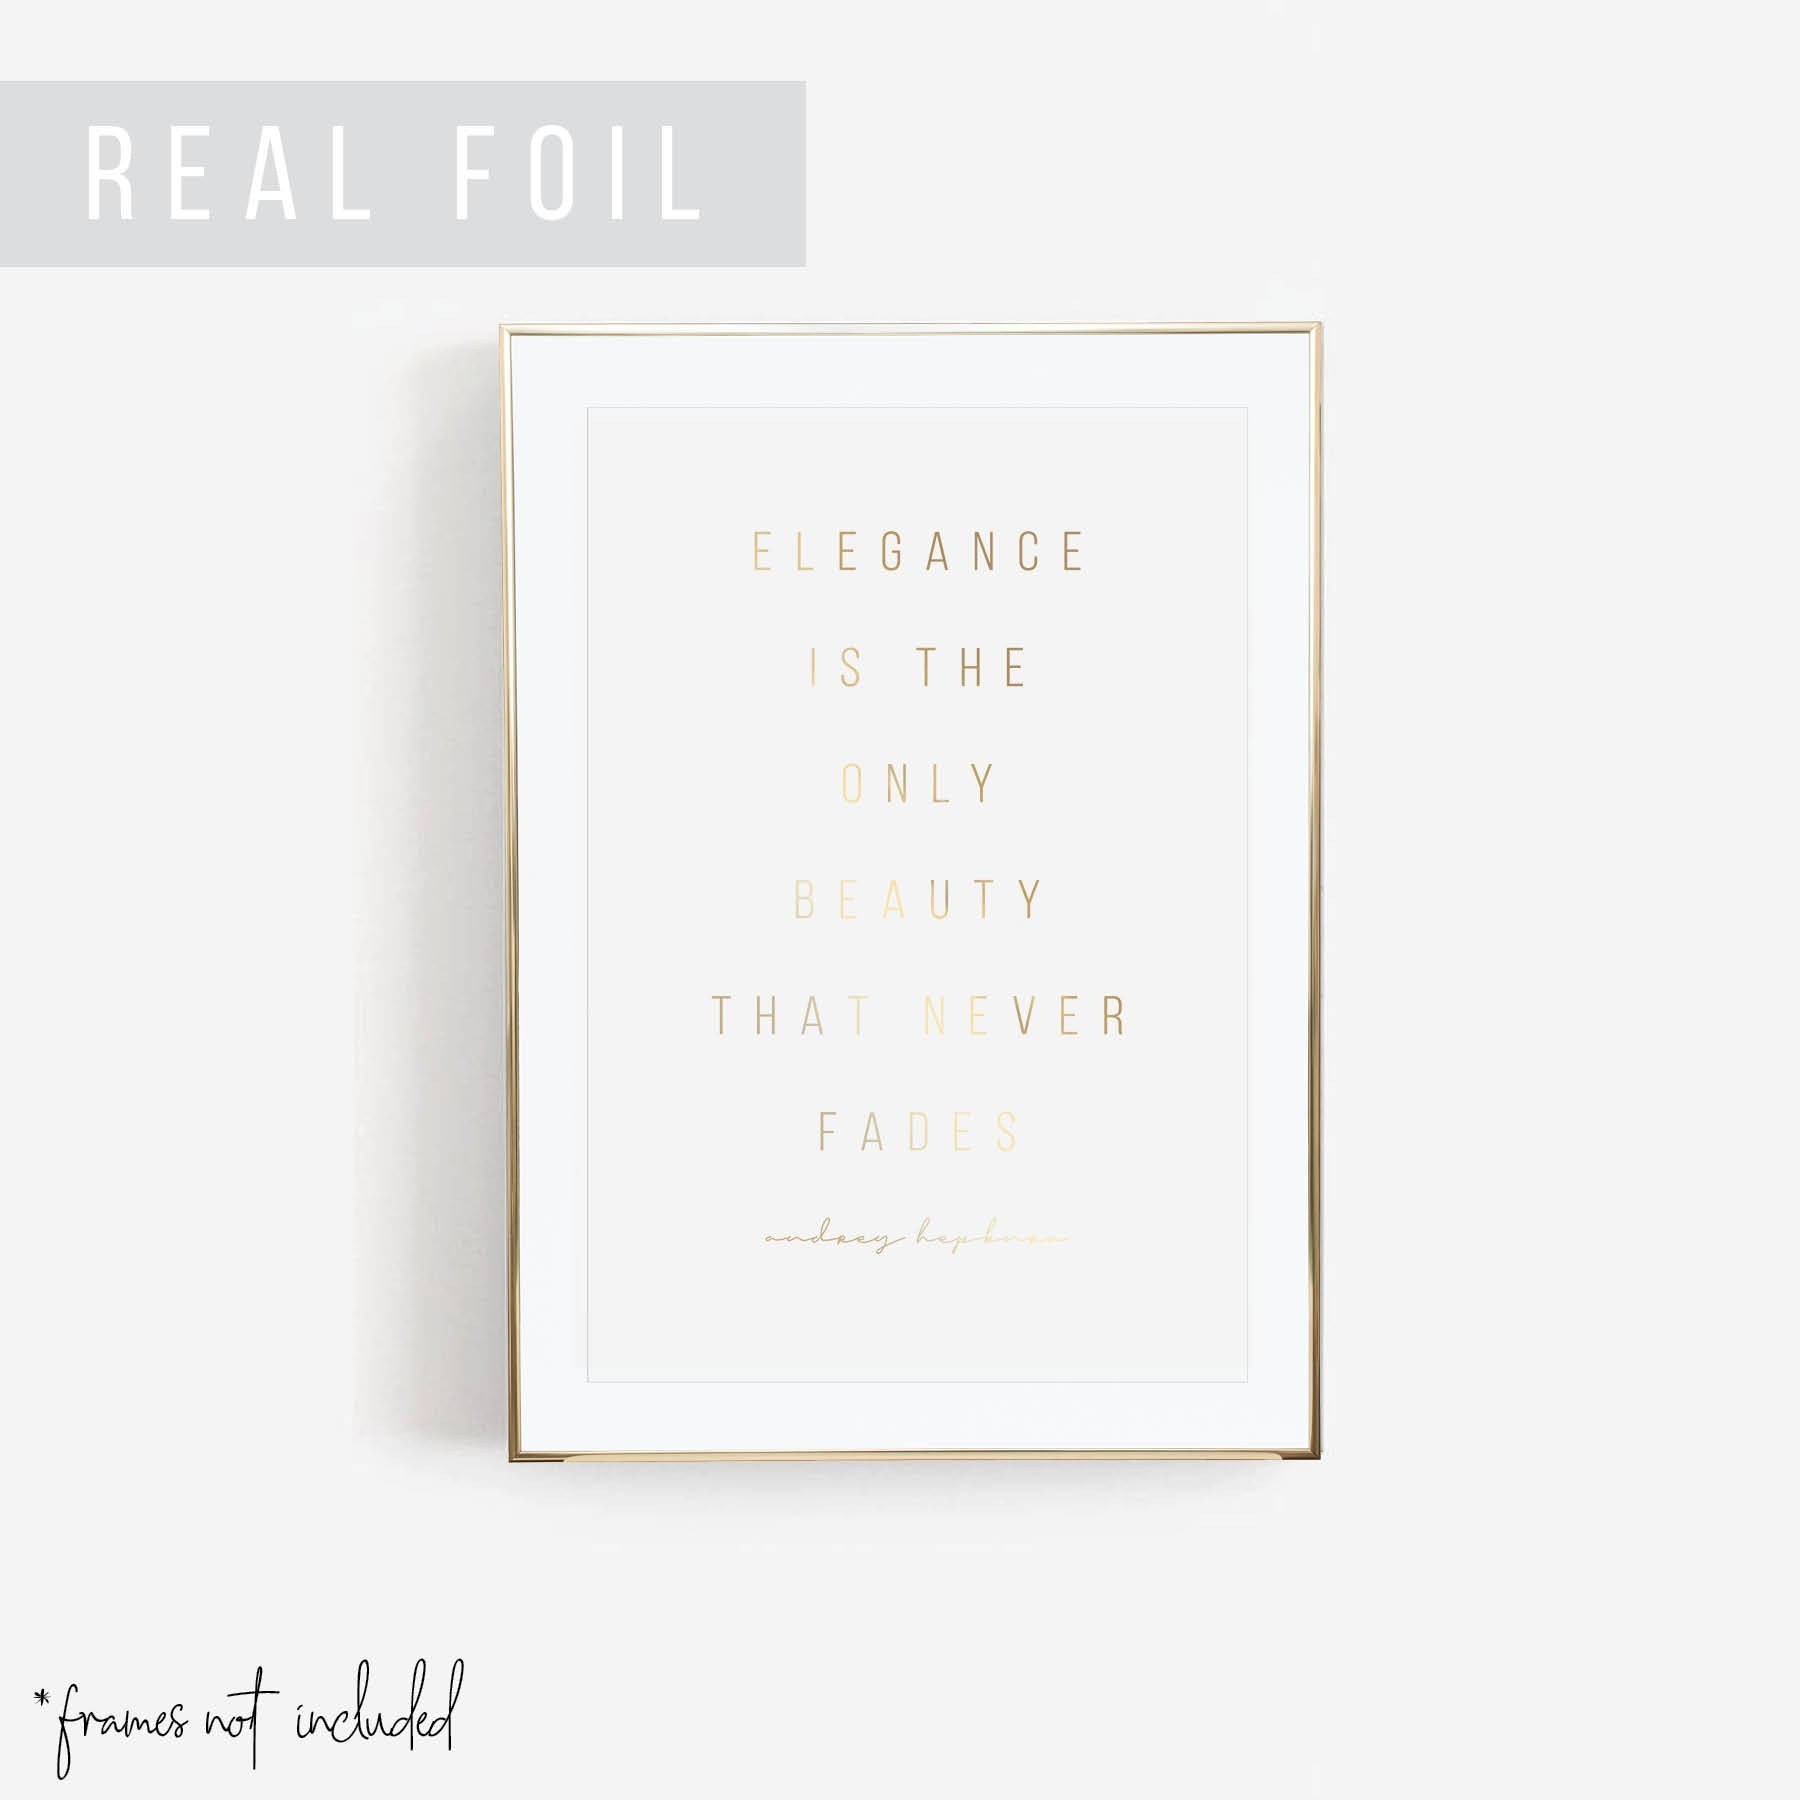 Elegance Is the Only Beauty that Never Fades. -Audrey Hepburn Quote Foiled Art Print